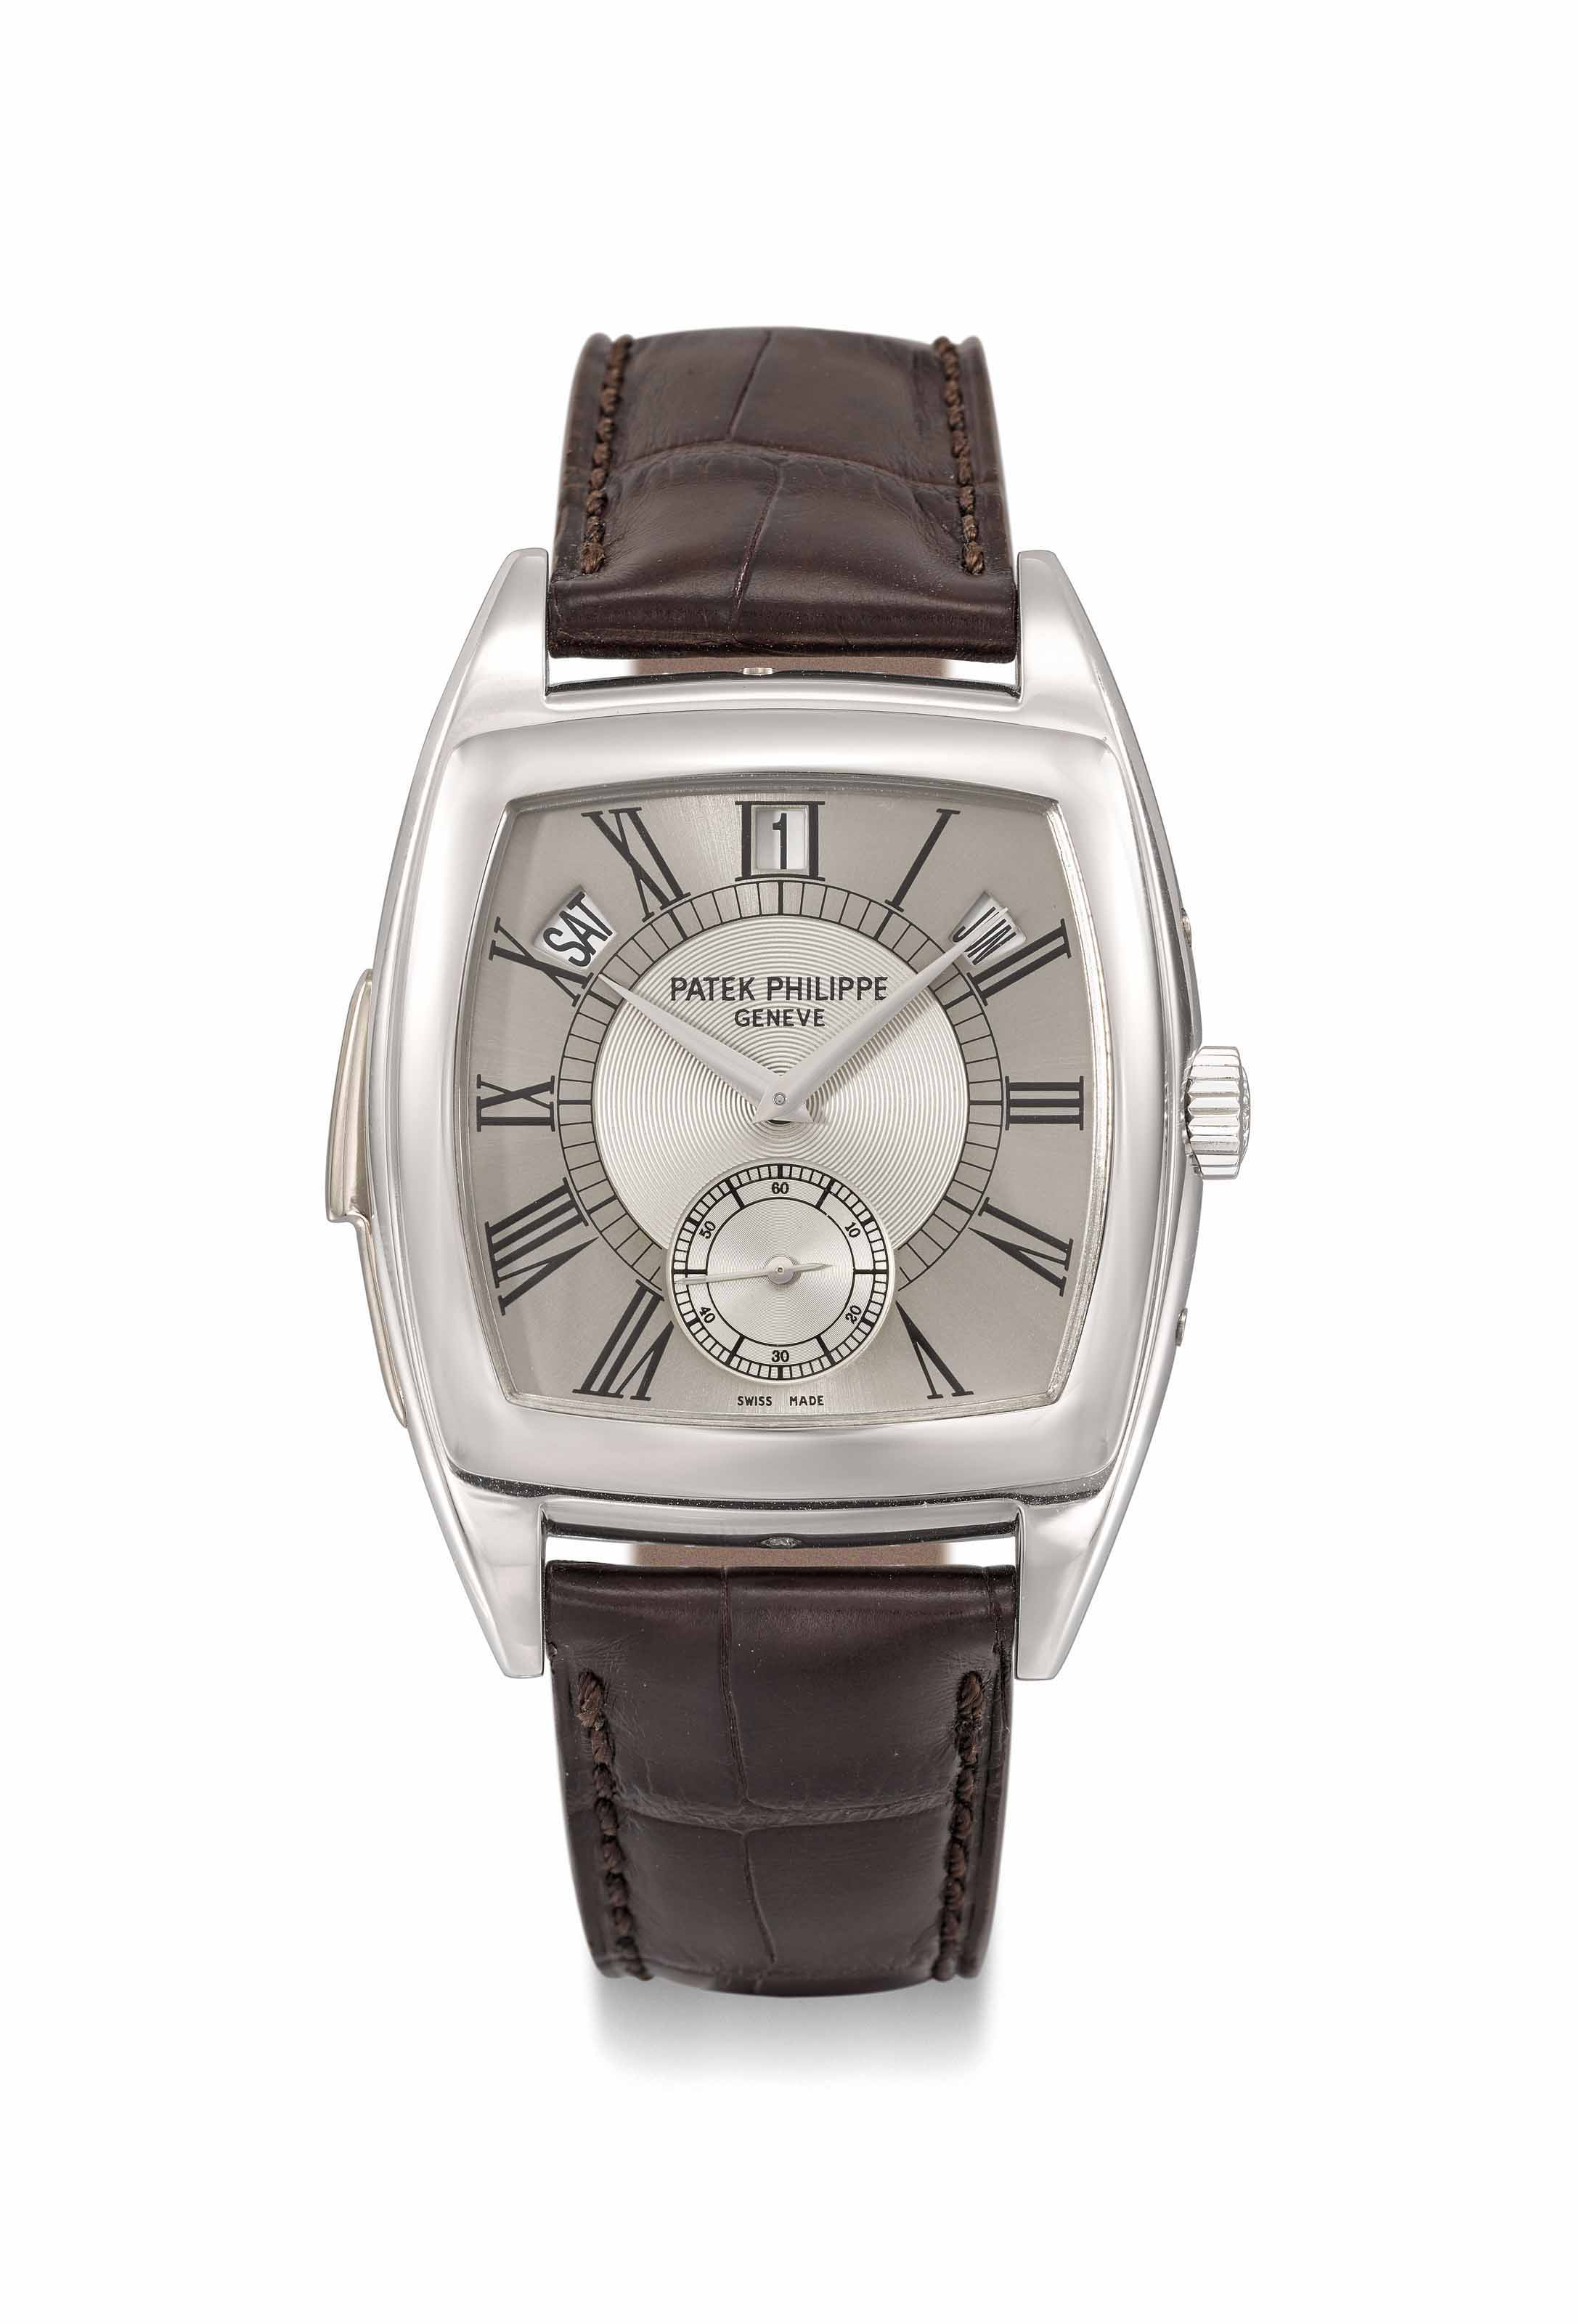 "Patek Philippe. An extremely fine and rare platinum tonneau-shaped automatic ""cathedral"" minute repeating annual calendar wristwatch with two-tone silvered dial and elongated Roman numerals, original sales tag, second case back, setting pin and box"